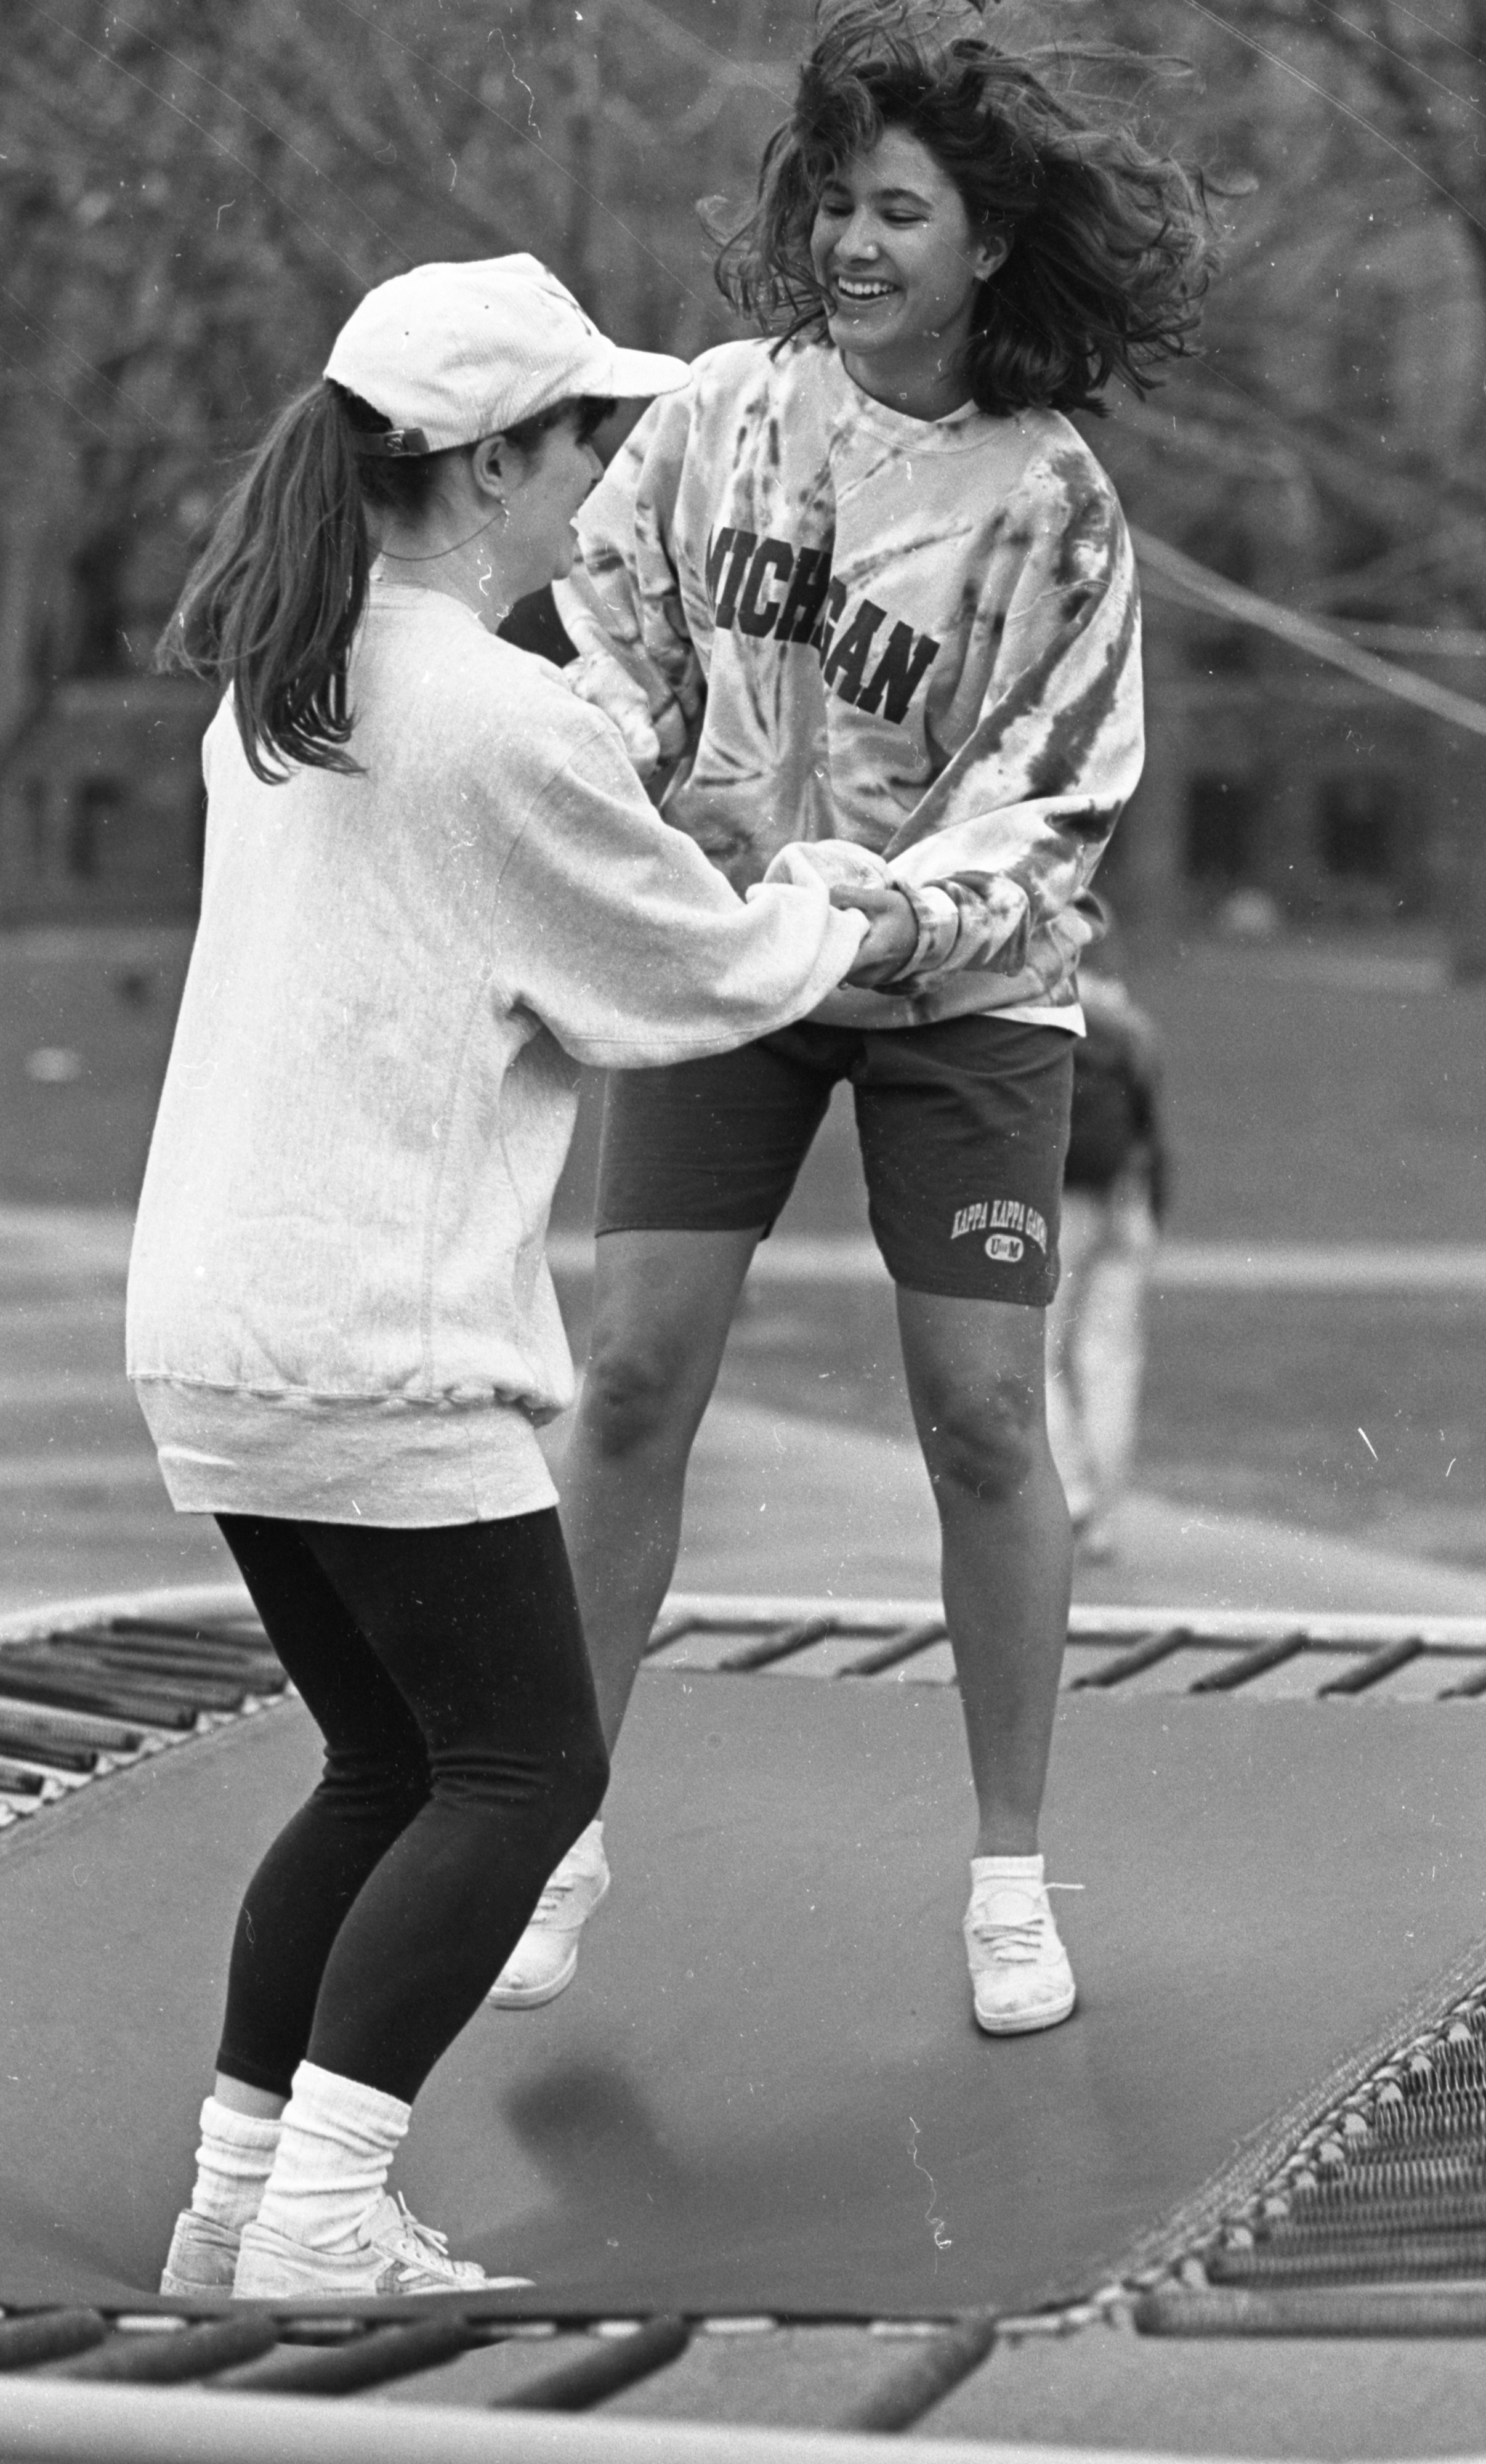 Christie Meyer & Vickie Bansell Jump In A Trampoline-A-Thon On The Diag, April 1991 image